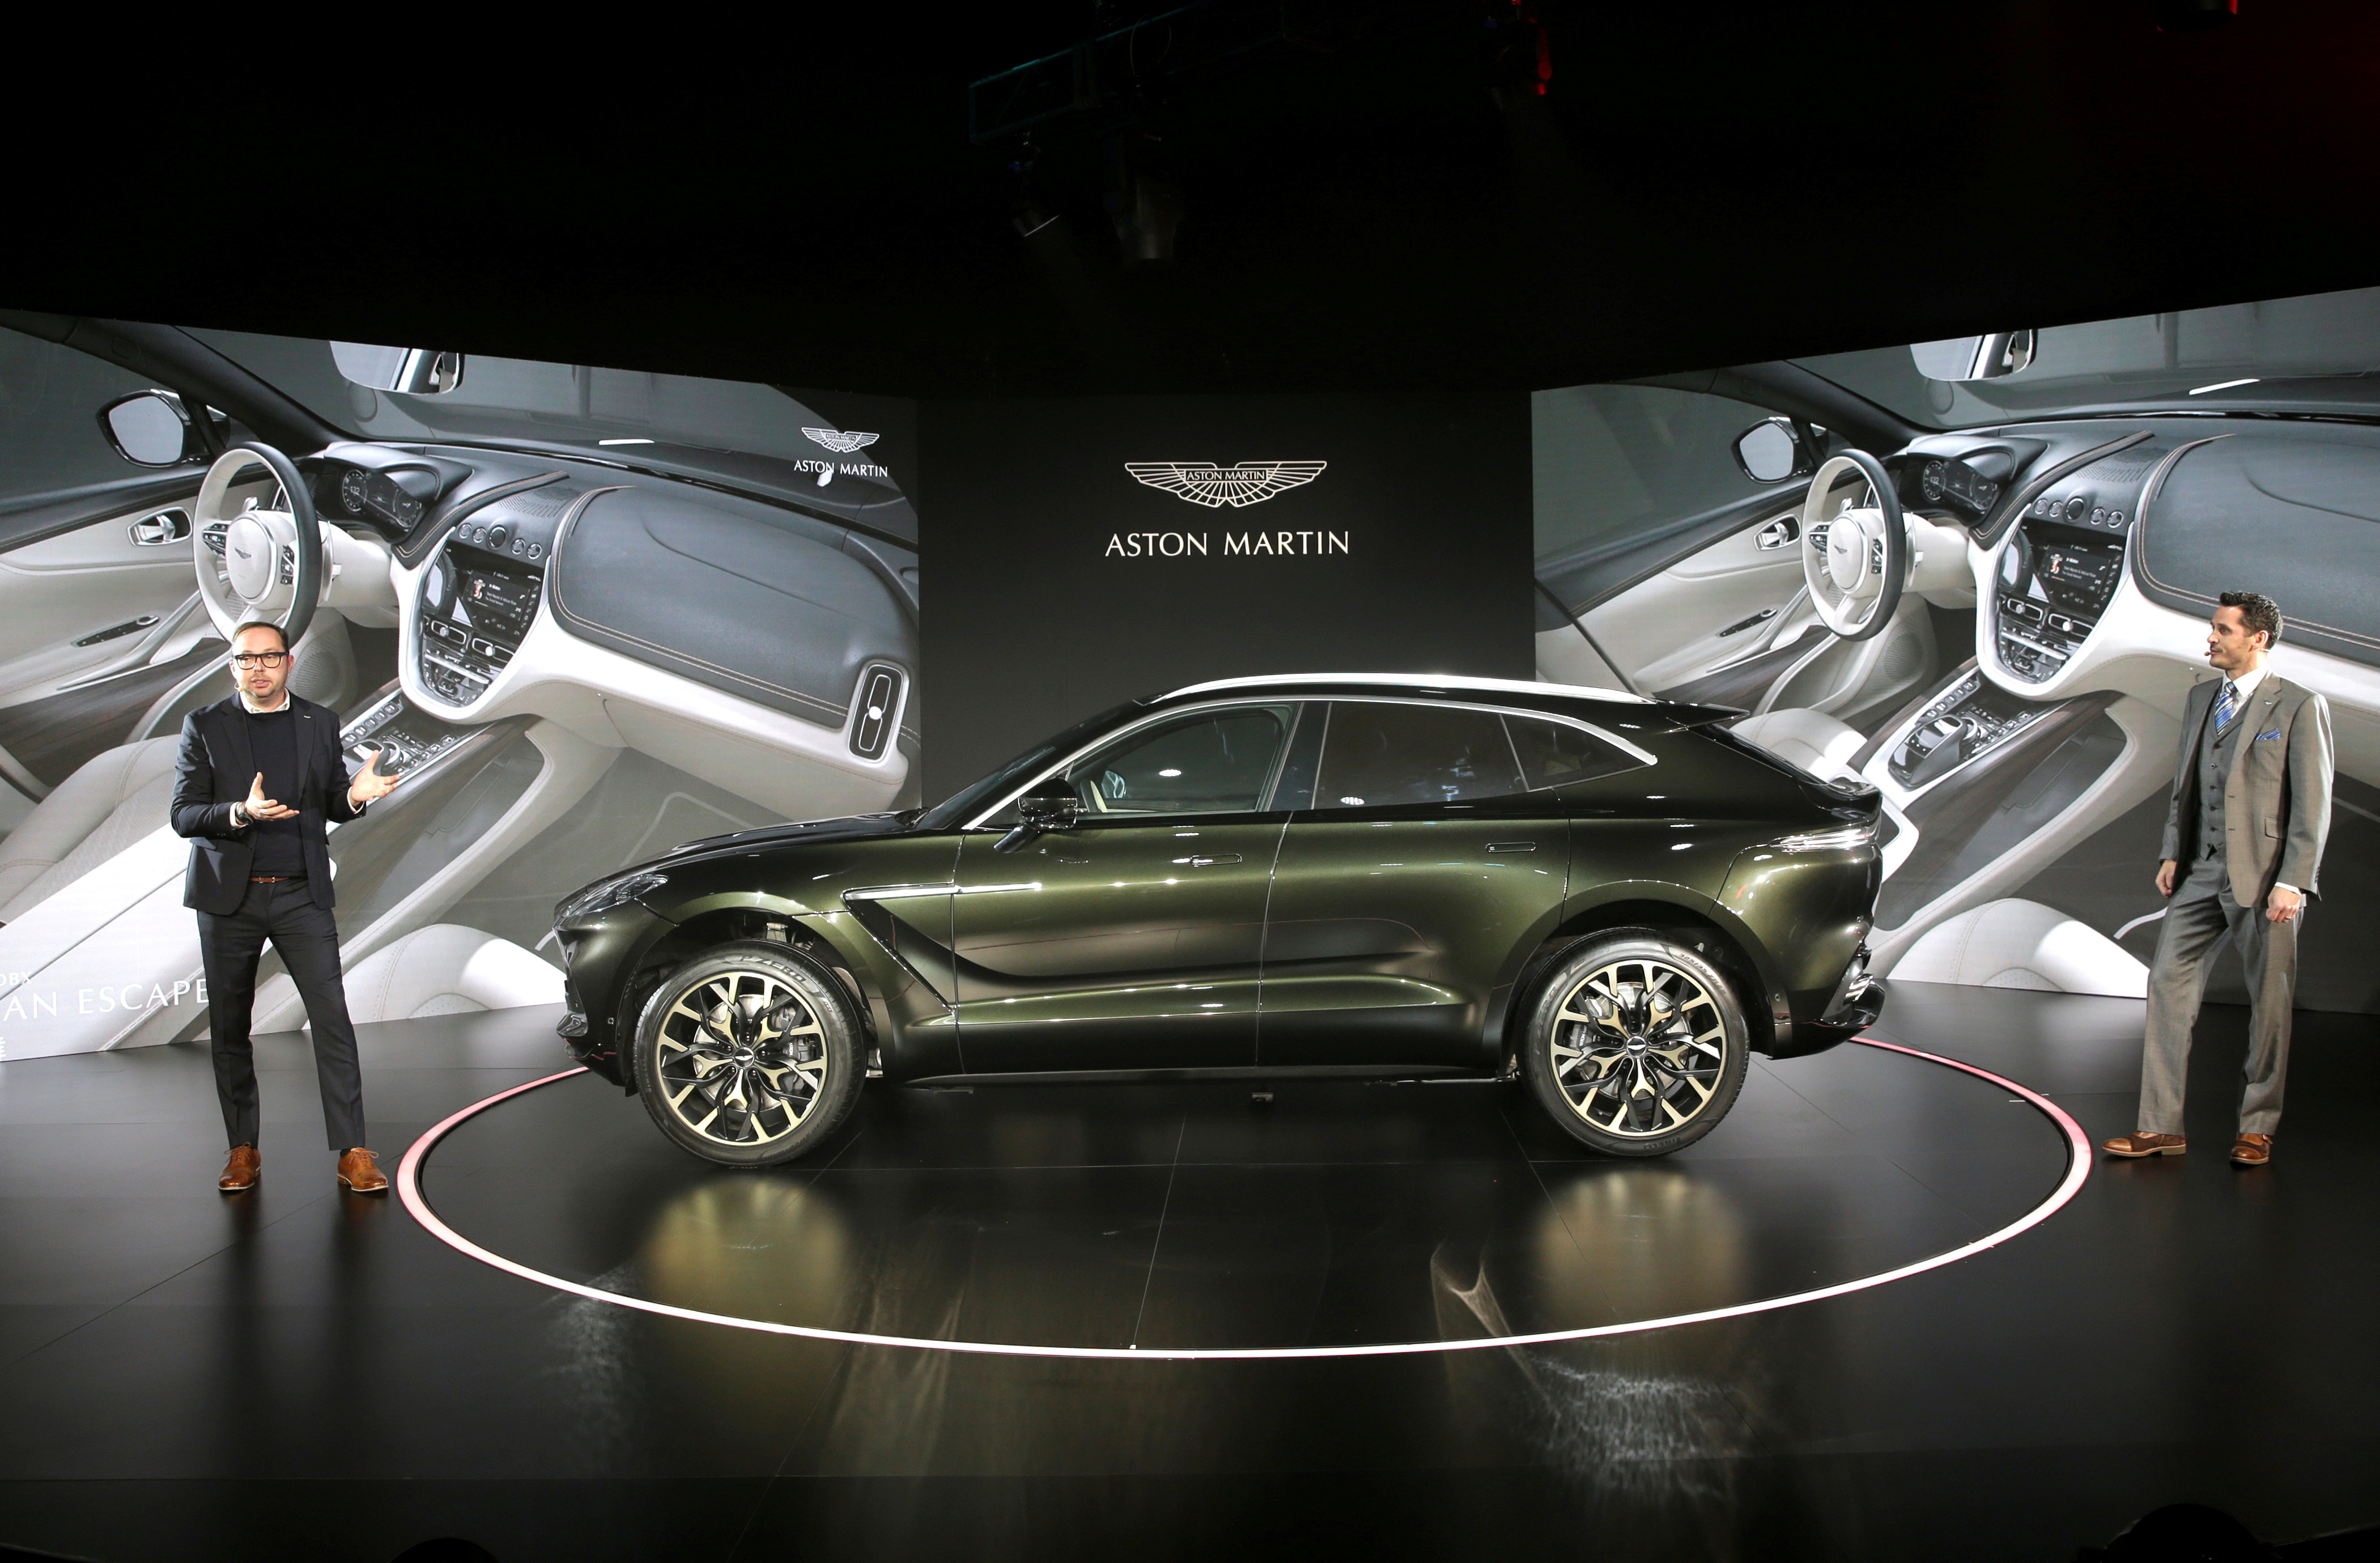 Aston Martin DBX, the company's first sport utility vehicle, is displayed at its global launch ceremony in Beijing, China November 20, 2019. REUTERS/Jason Lee/File Photo